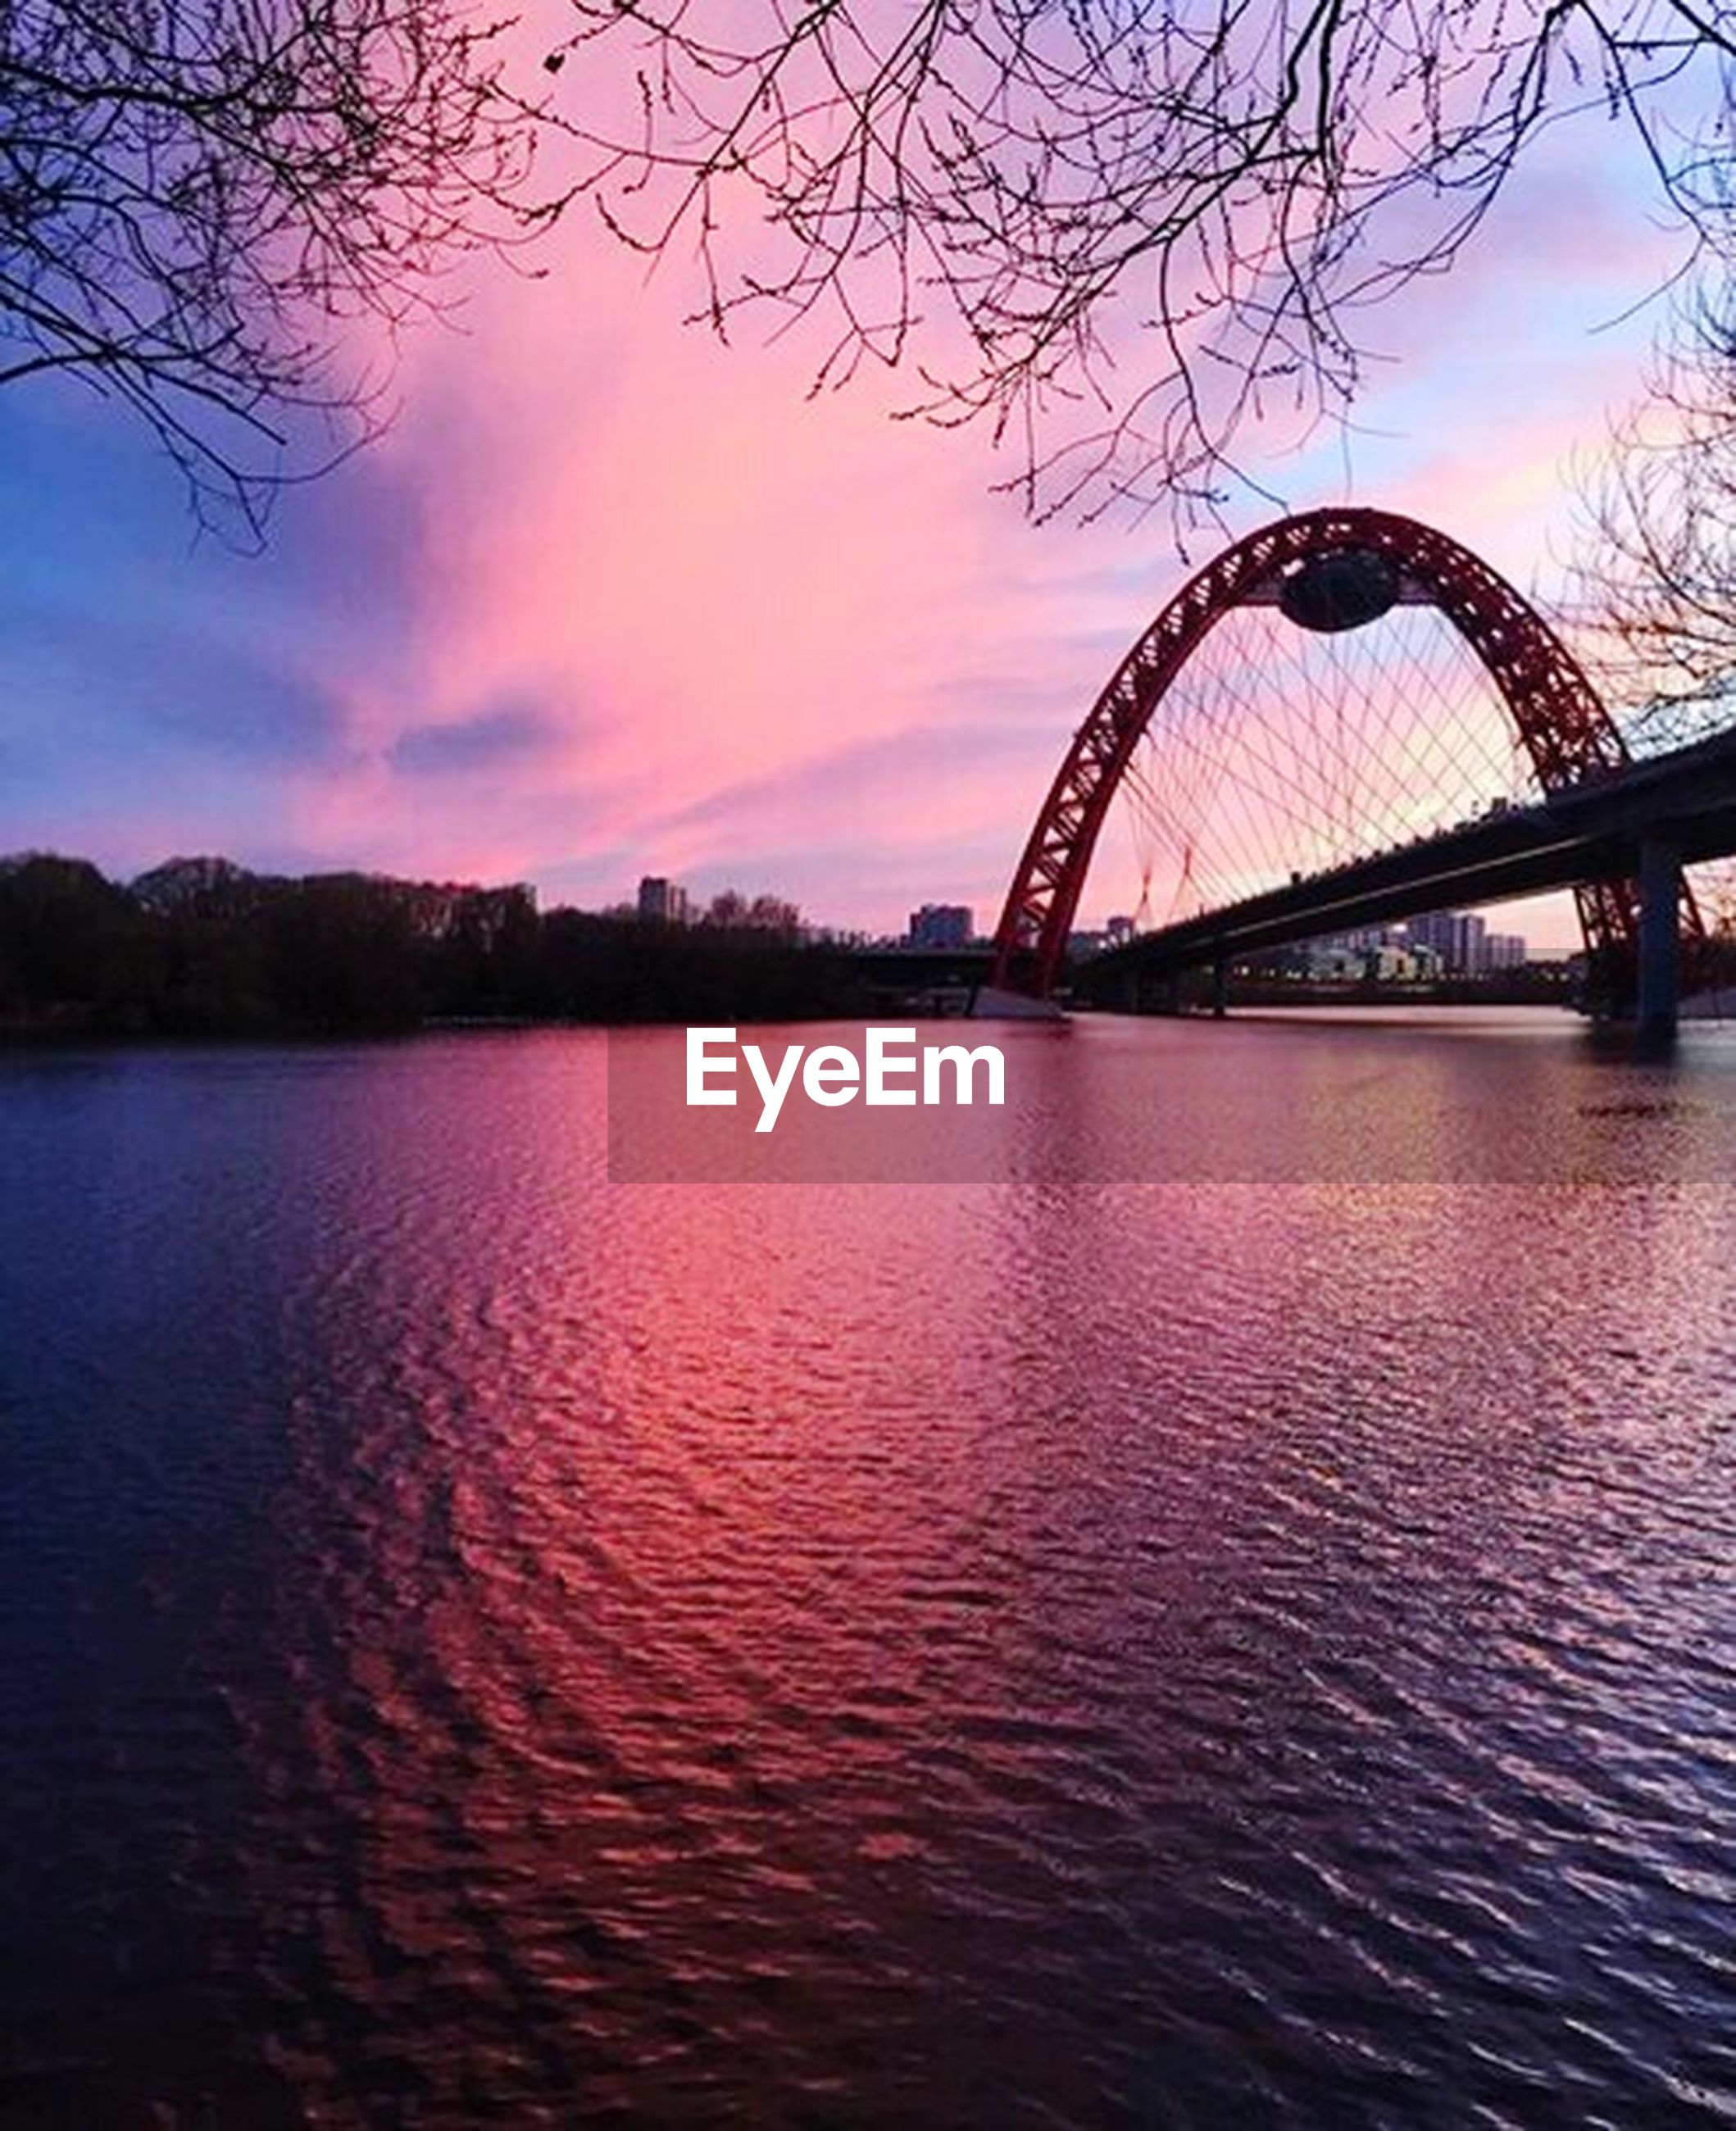 water, river, sky, waterfront, built structure, tree, ferris wheel, architecture, sunset, connection, bridge - man made structure, reflection, lake, silhouette, tranquil scene, scenics, cloud - sky, tranquility, bridge, travel destinations